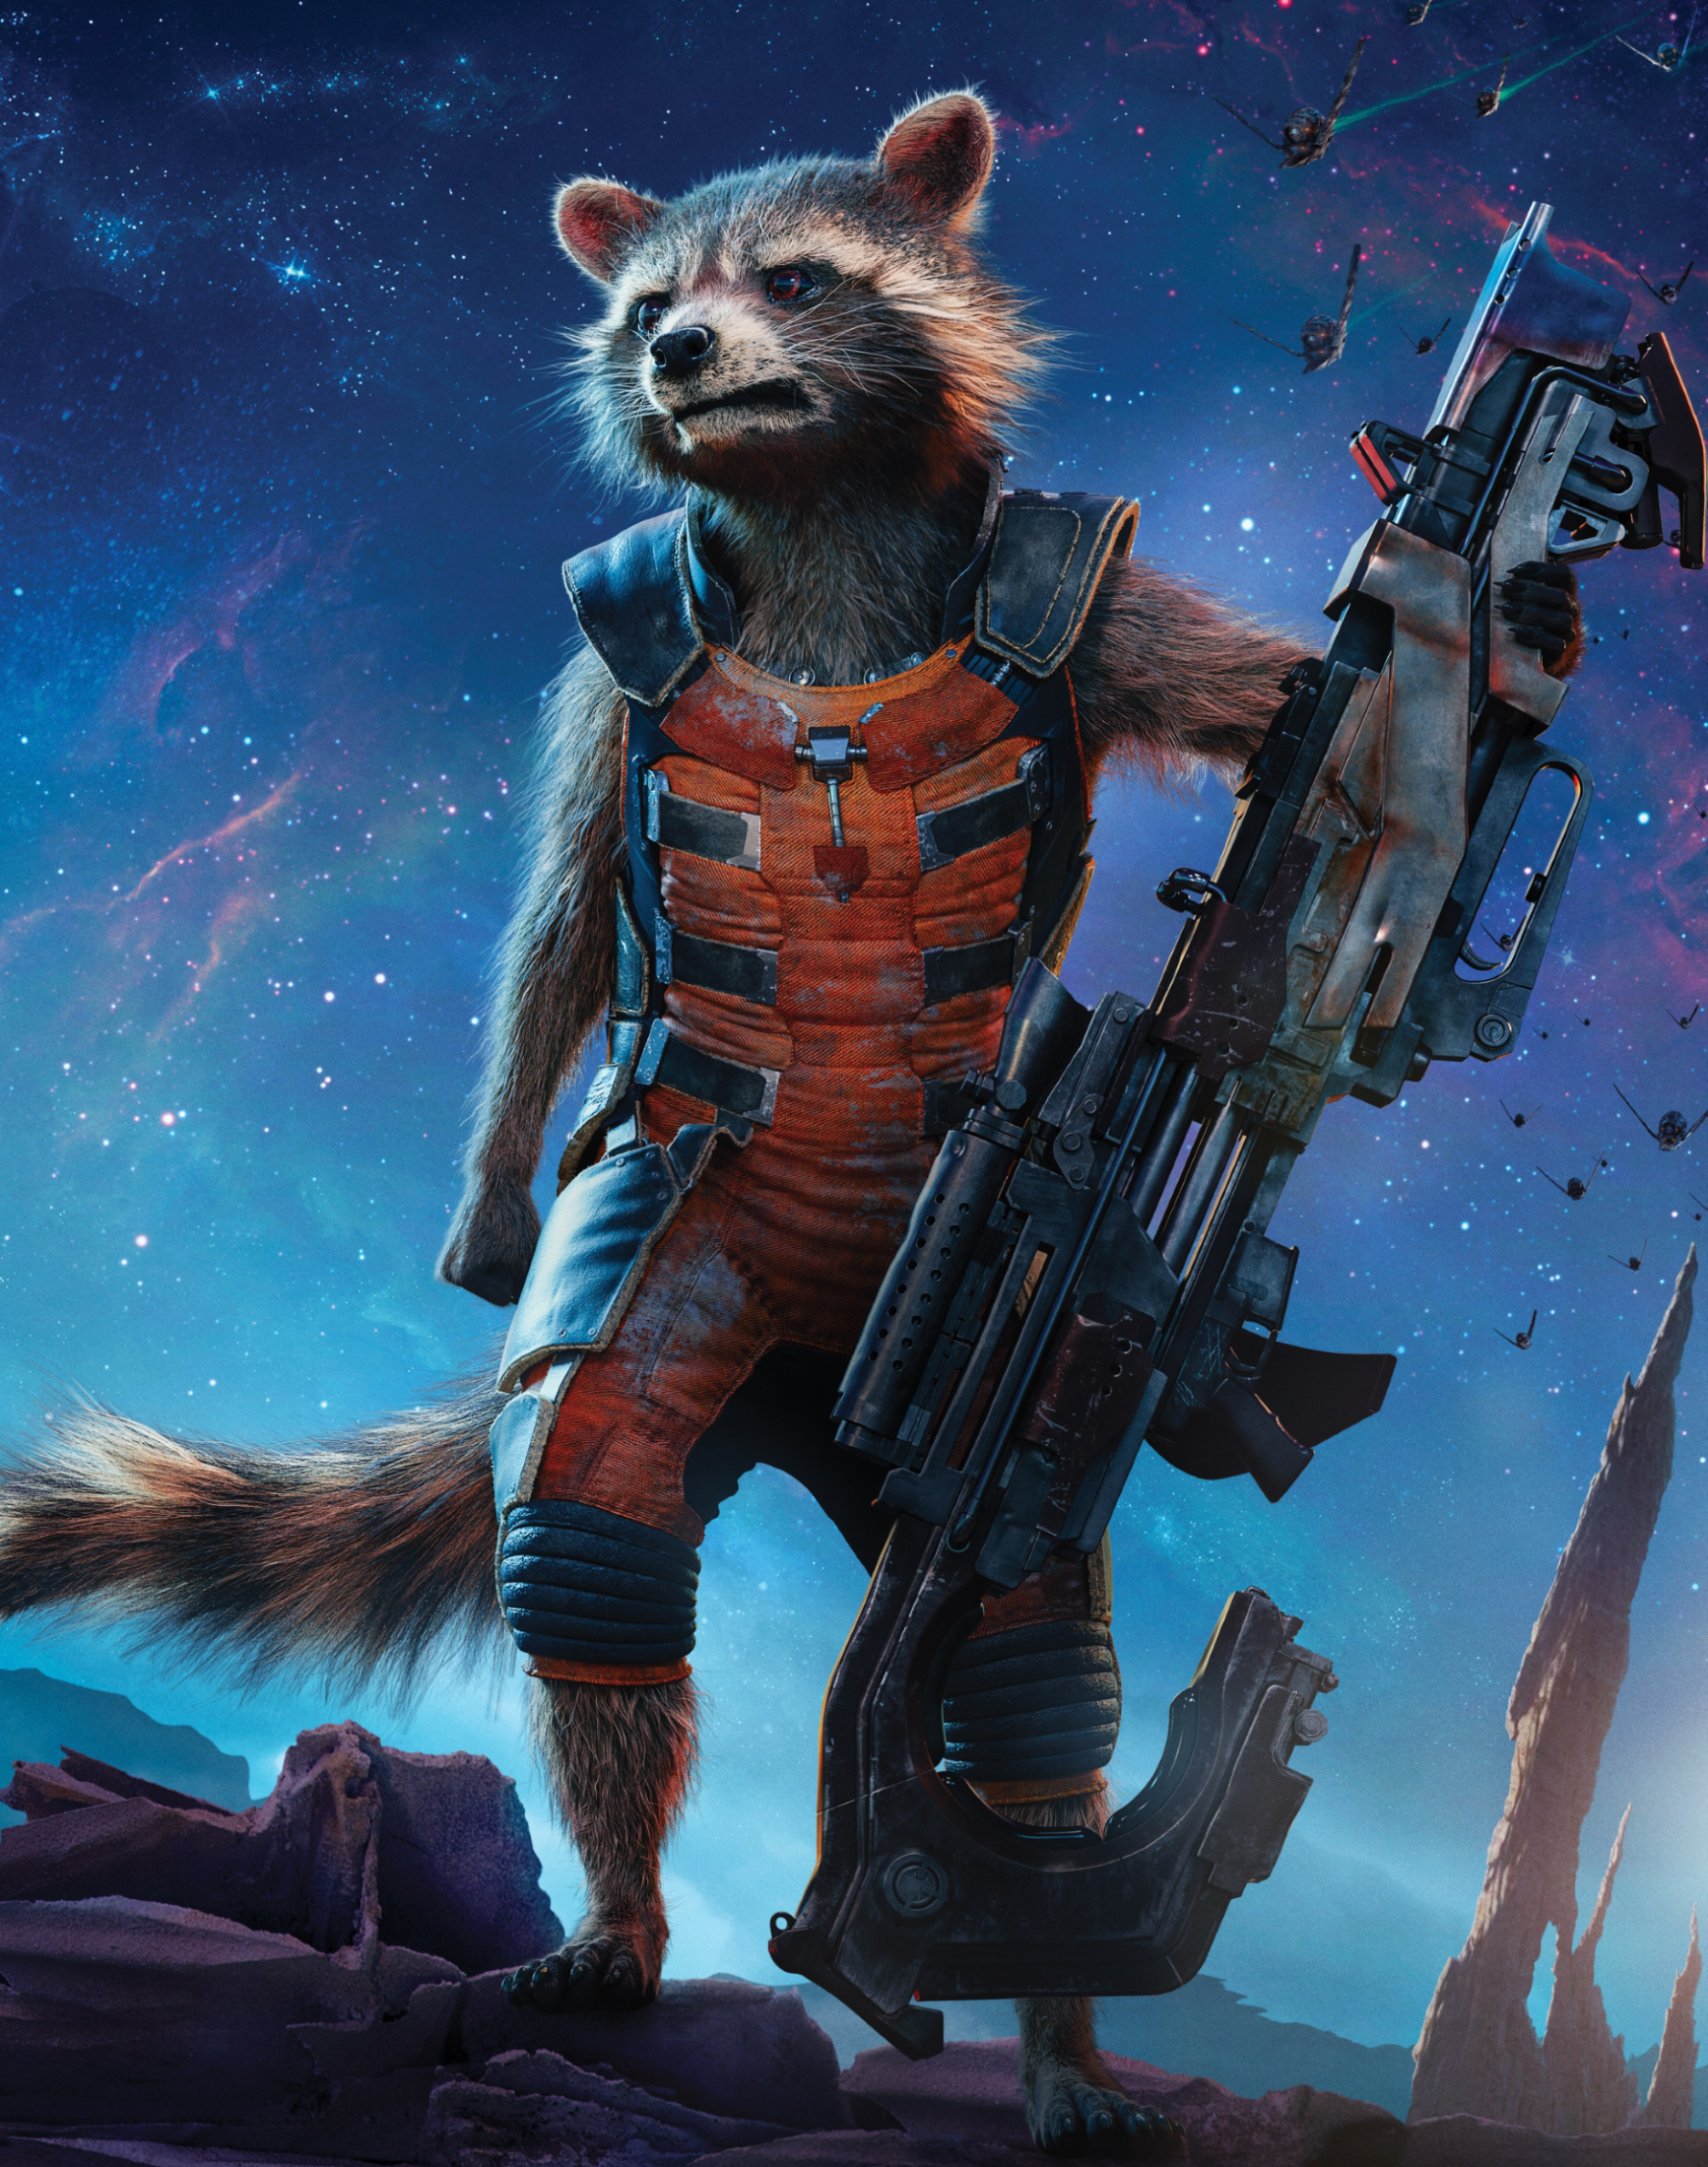 Rocket Raccoon  Marvel Cinematic Universe Wiki  FANDOM